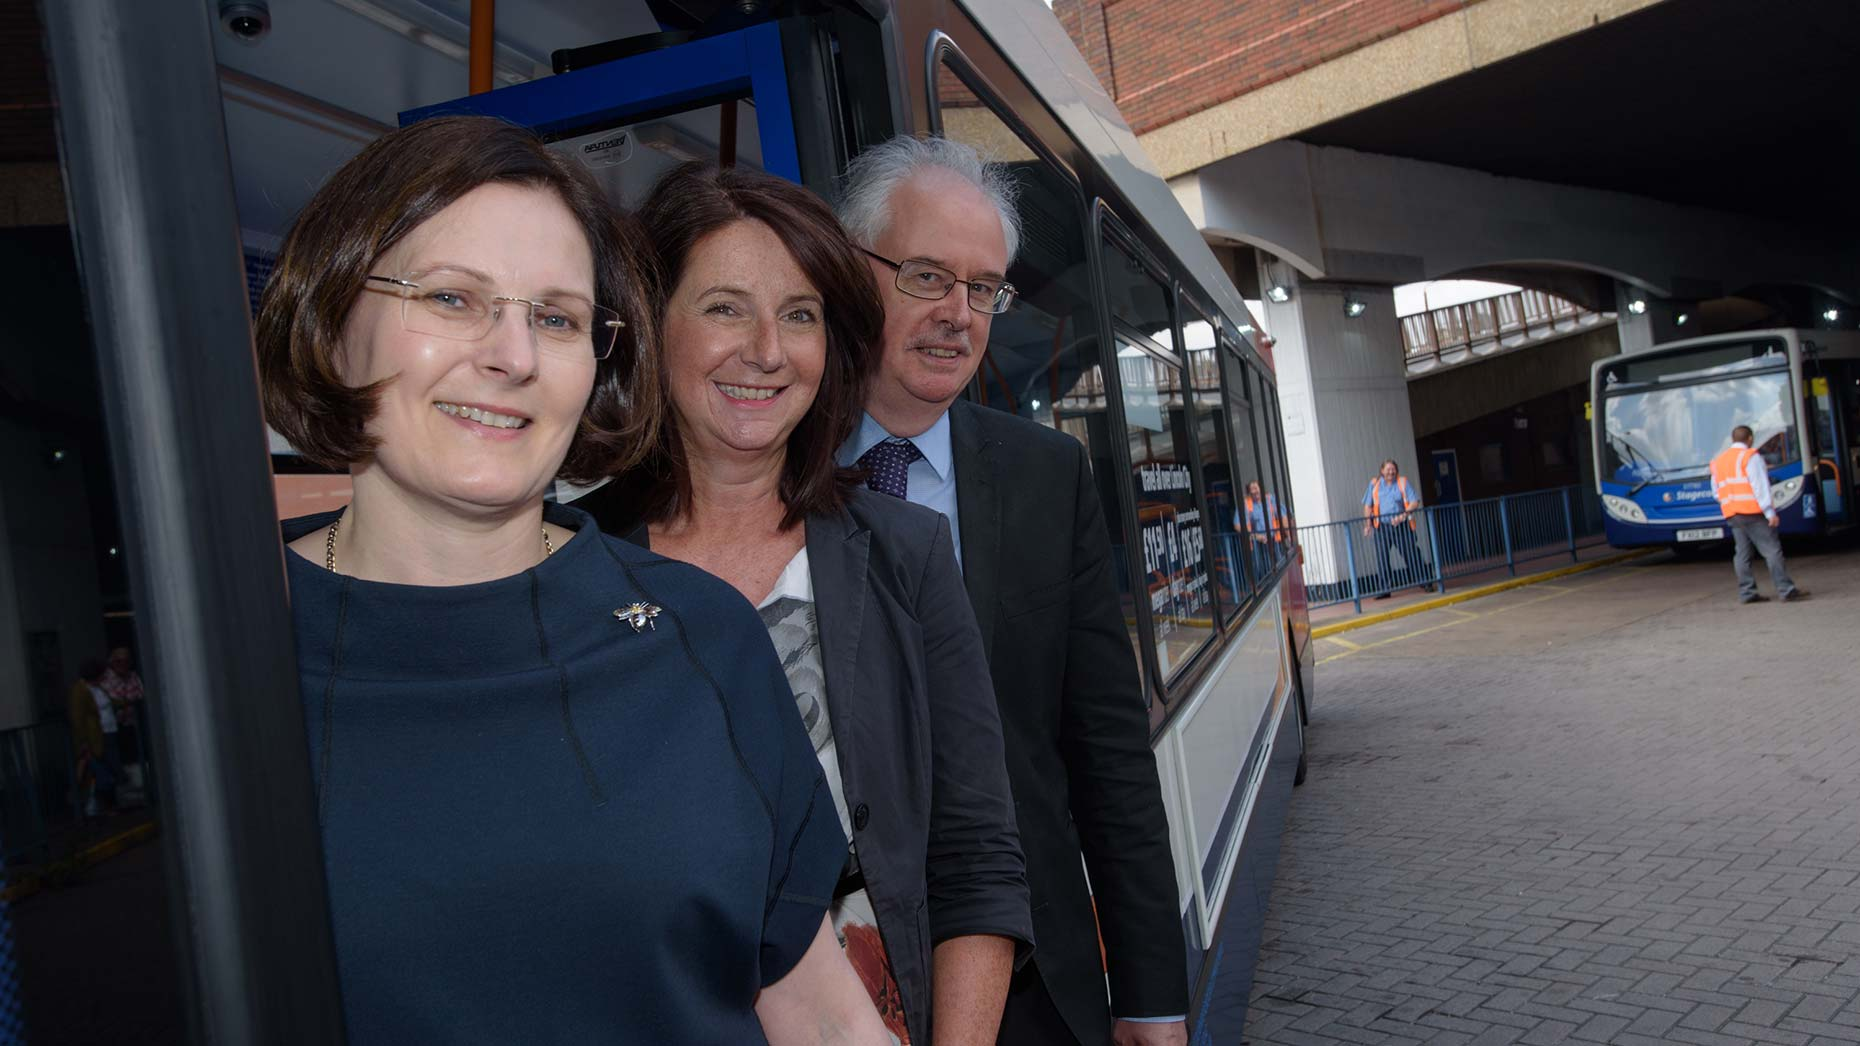 Left to right: Ursula Lidbetter, chief executive of Lincolnshire Co-op; Angela Andrews, chief executive of City of Lincoln Council; Councillor Donald Nannestad, deputy leader of City of Lincoln Council. Photo: Steve Smailes for The Lincolnite